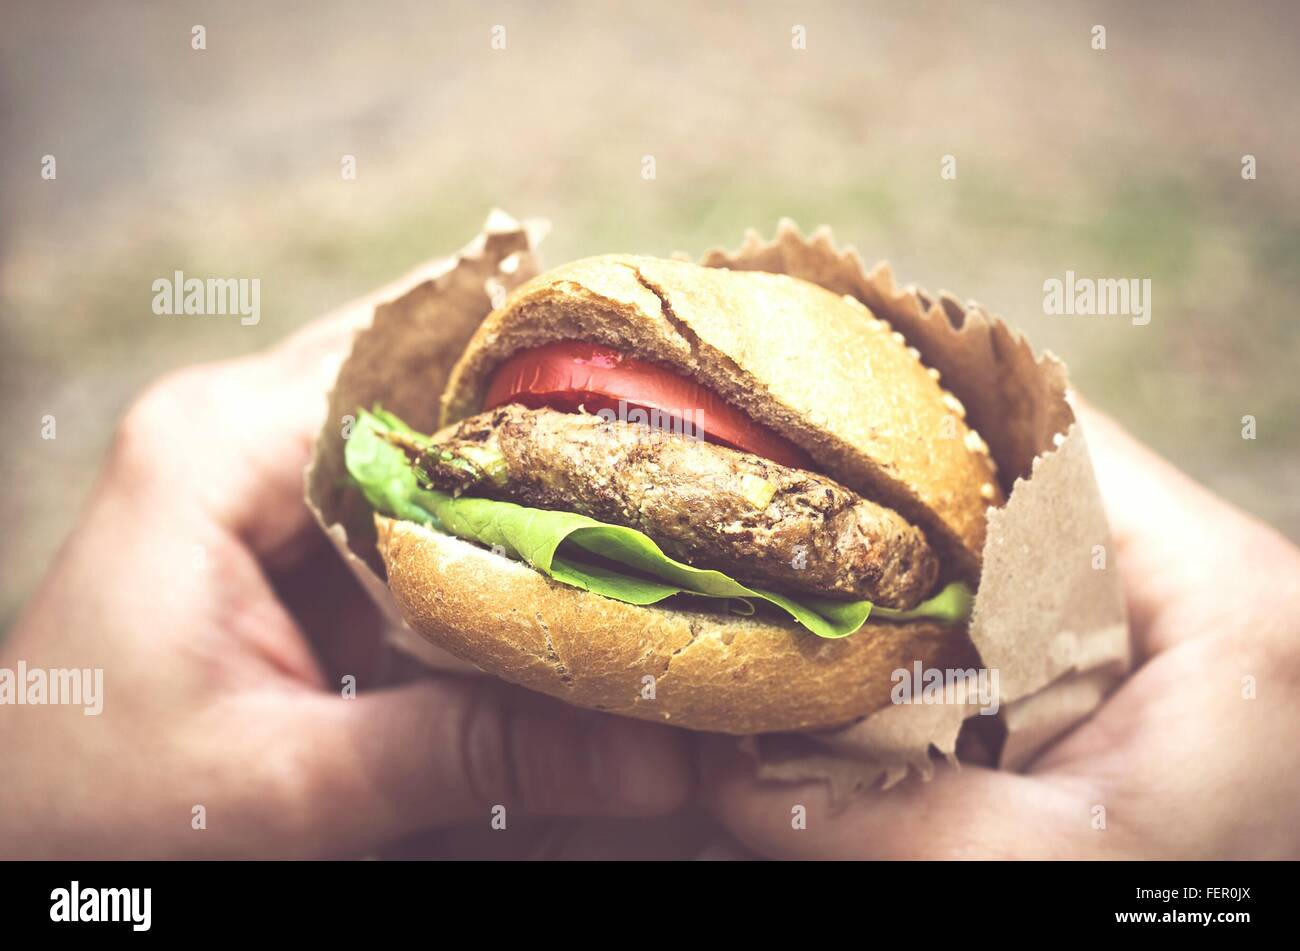 Close-Up Of Hands Holding Hamburger - Stock Image